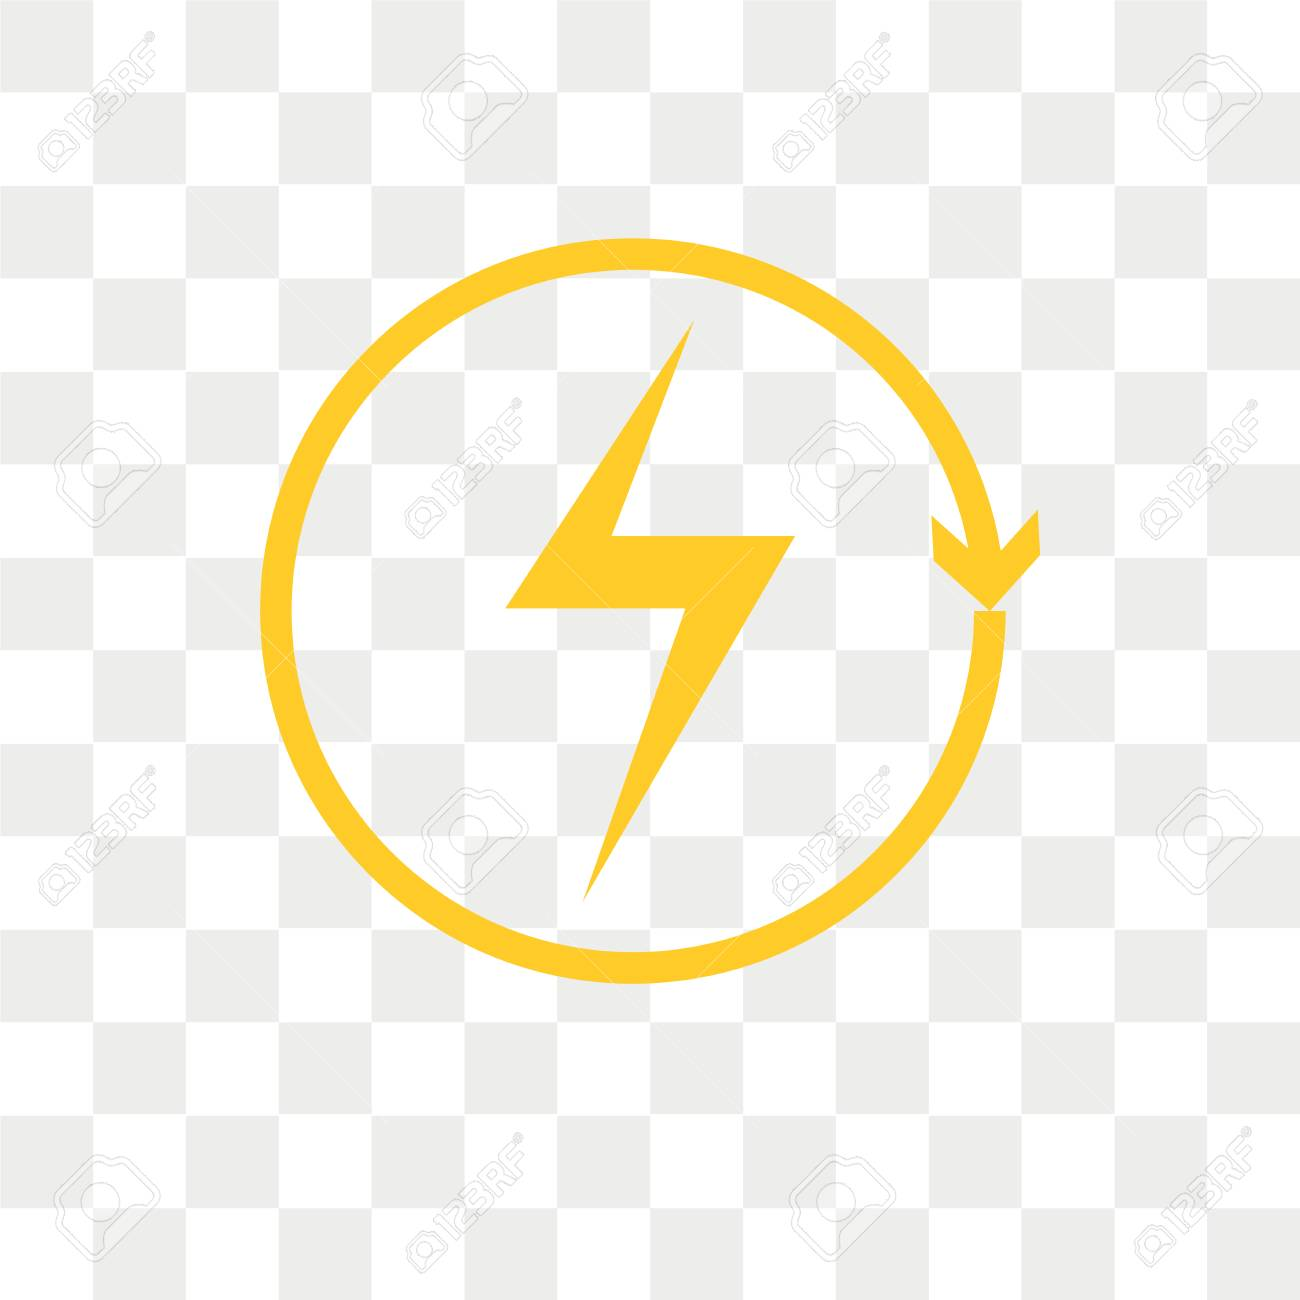 Renewable energy vector icon isolated on transparent background,